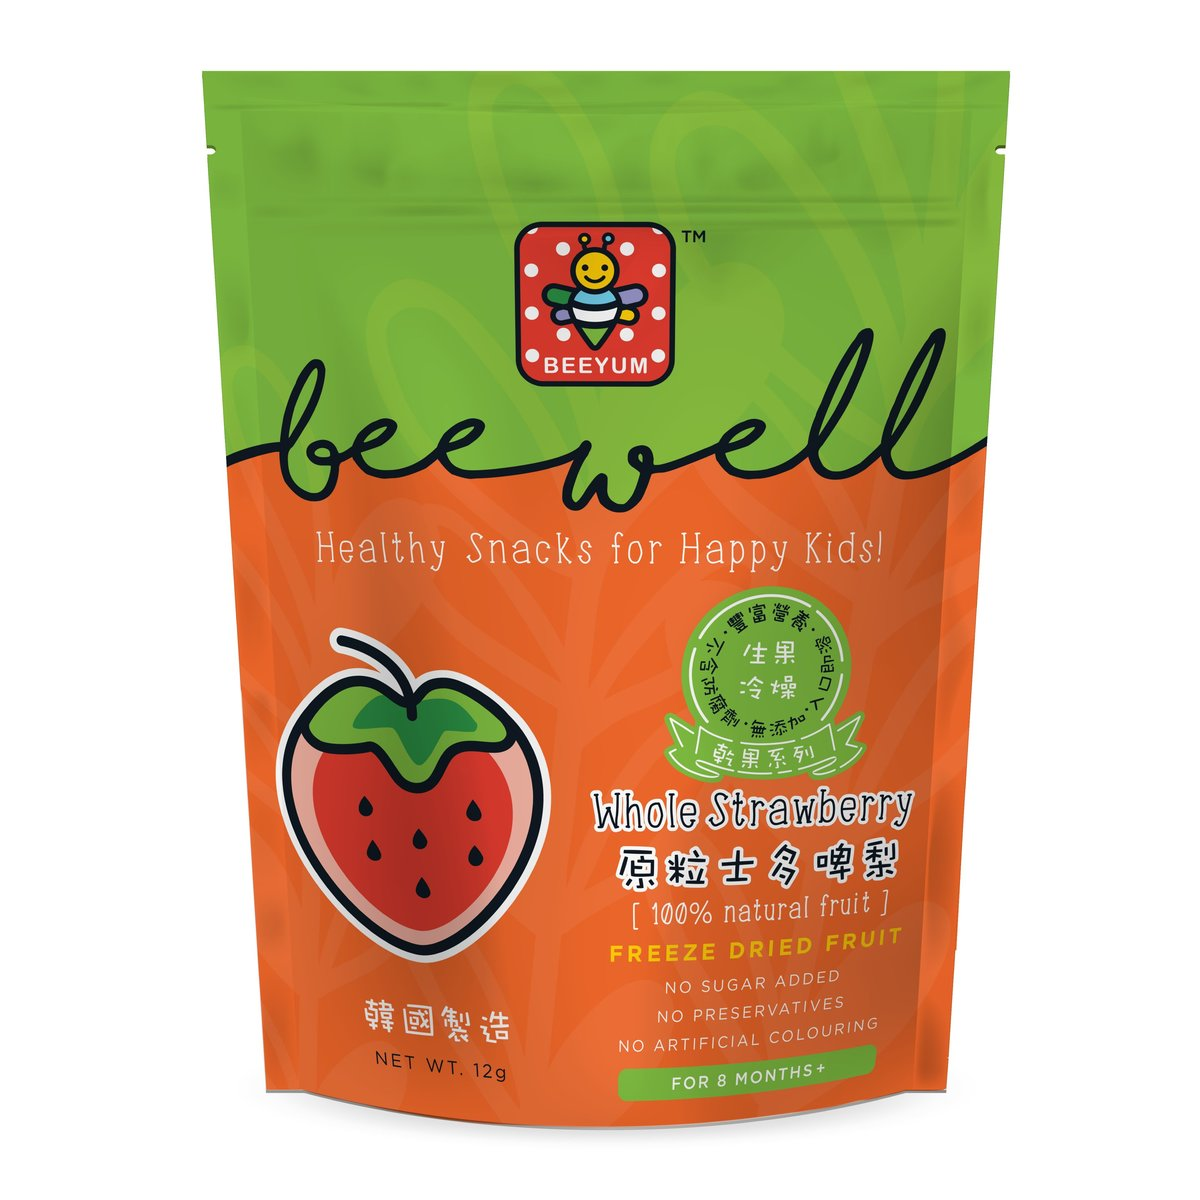 Beewell freeze dried food (strawberry)(for 8 months) - (Expiry Date: 30 May 2020)